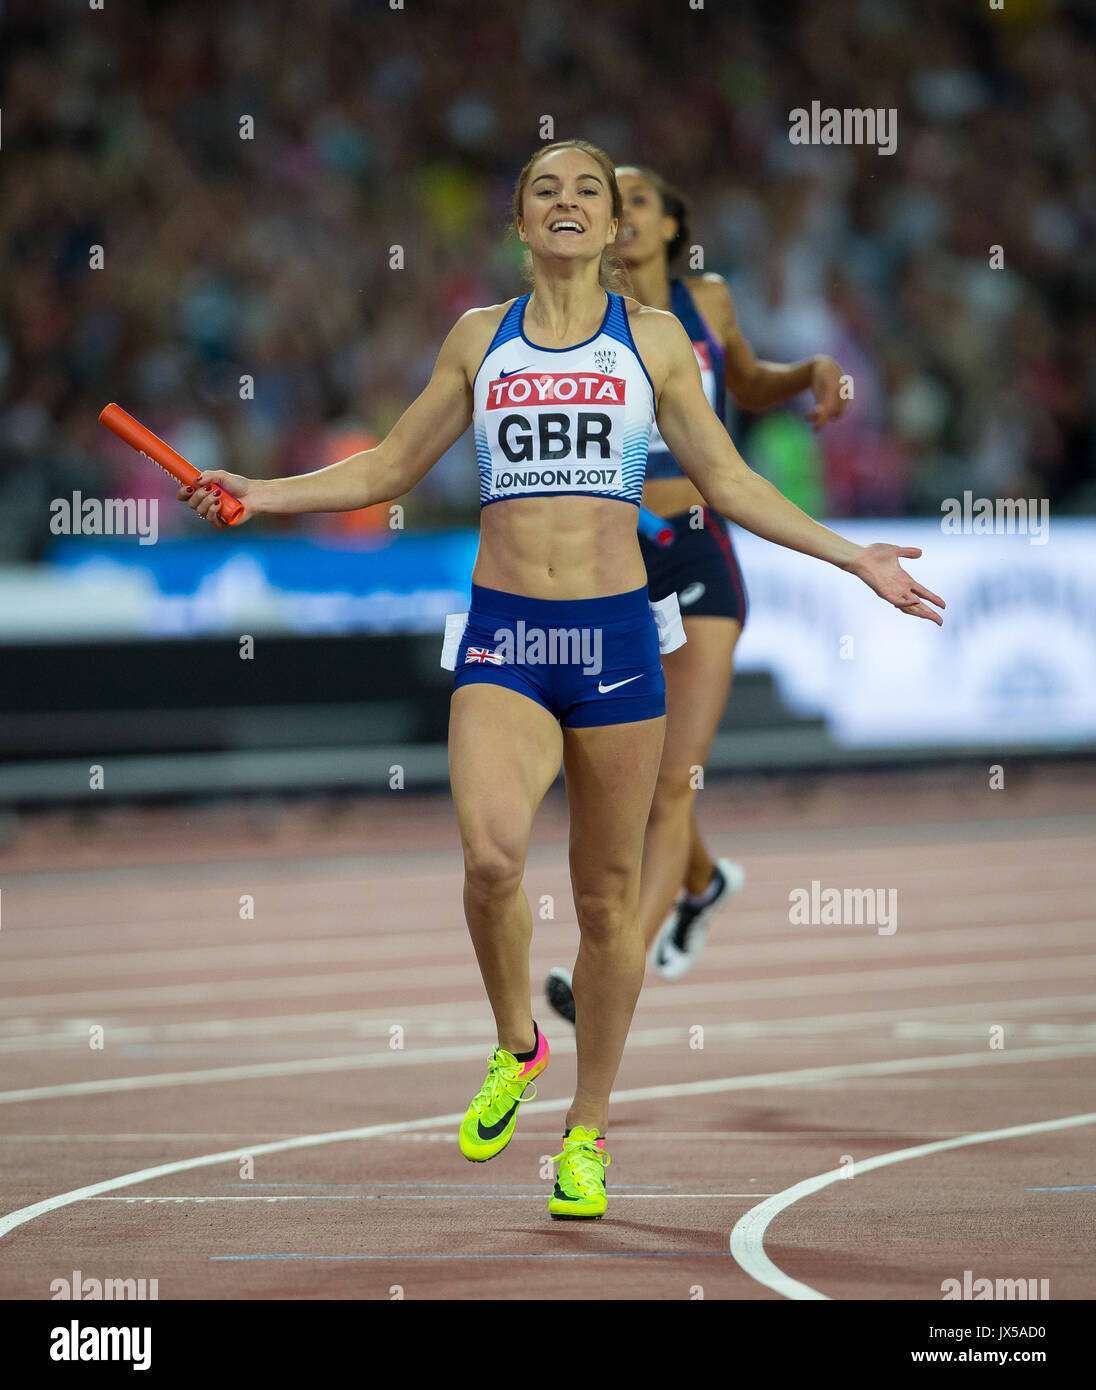 London, UK. 13th Aug, 2017. Emily Diamond of Great Britain anchors her team to silver during the Women's 4x400m Relay final during the Final Day of the IAAF World Athletics Championships (Day 10) at the Olympic Park, London, England on 13 August 2017. Photo by Andy Rowland/PRiME Media Images. Credit: Andrew Rowland/Alamy Live News - Stock Image